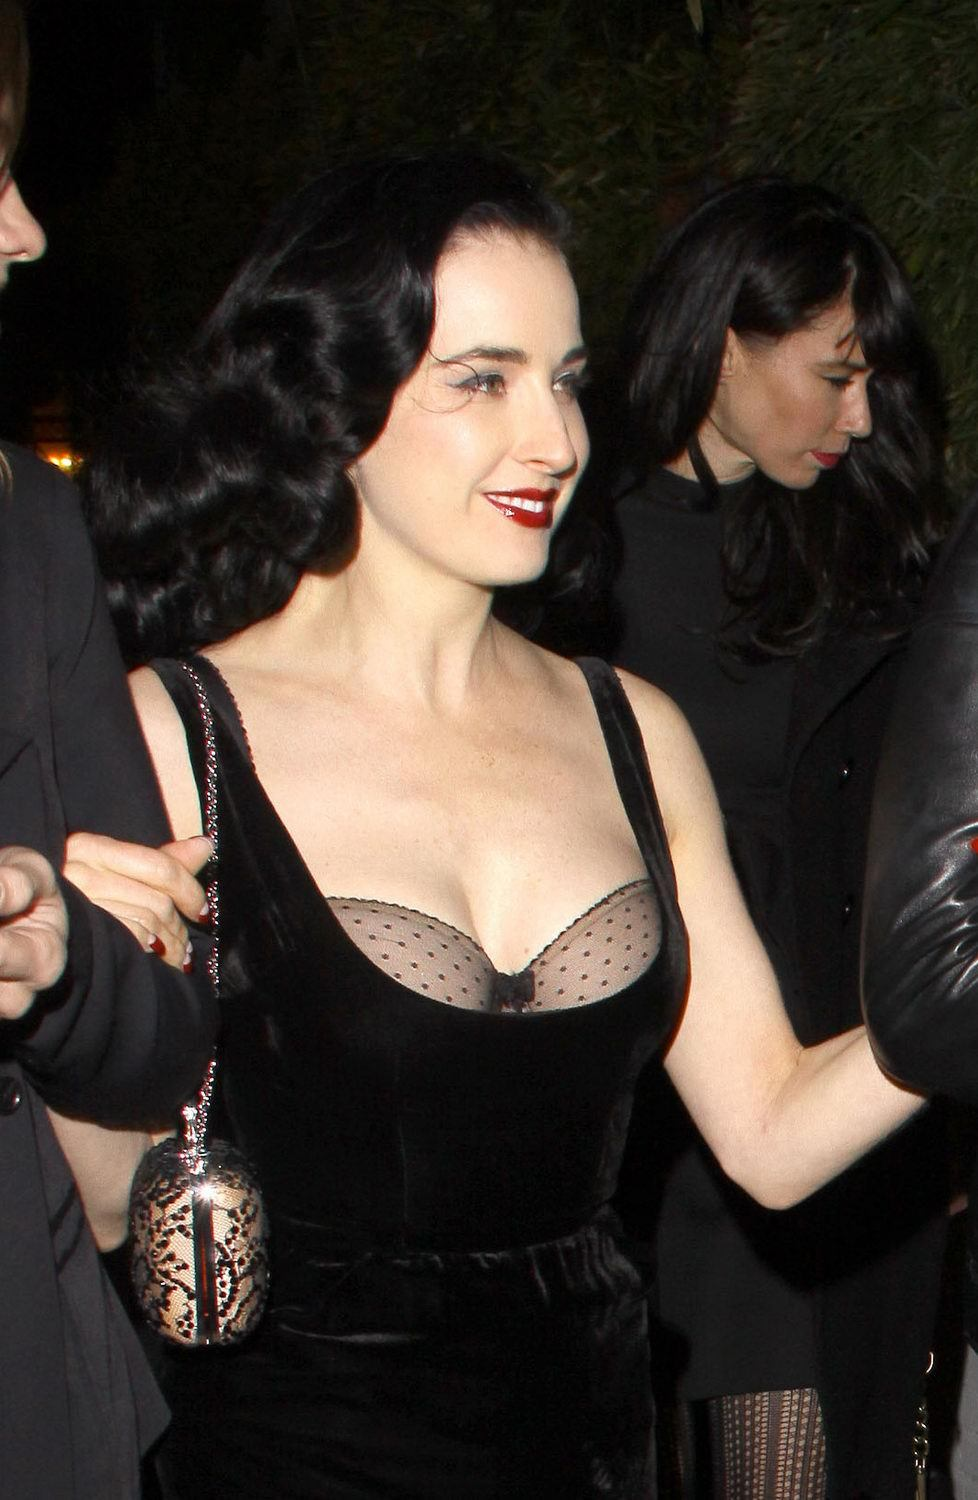 Dita Von Teese at Chateau Marmont, April 5th